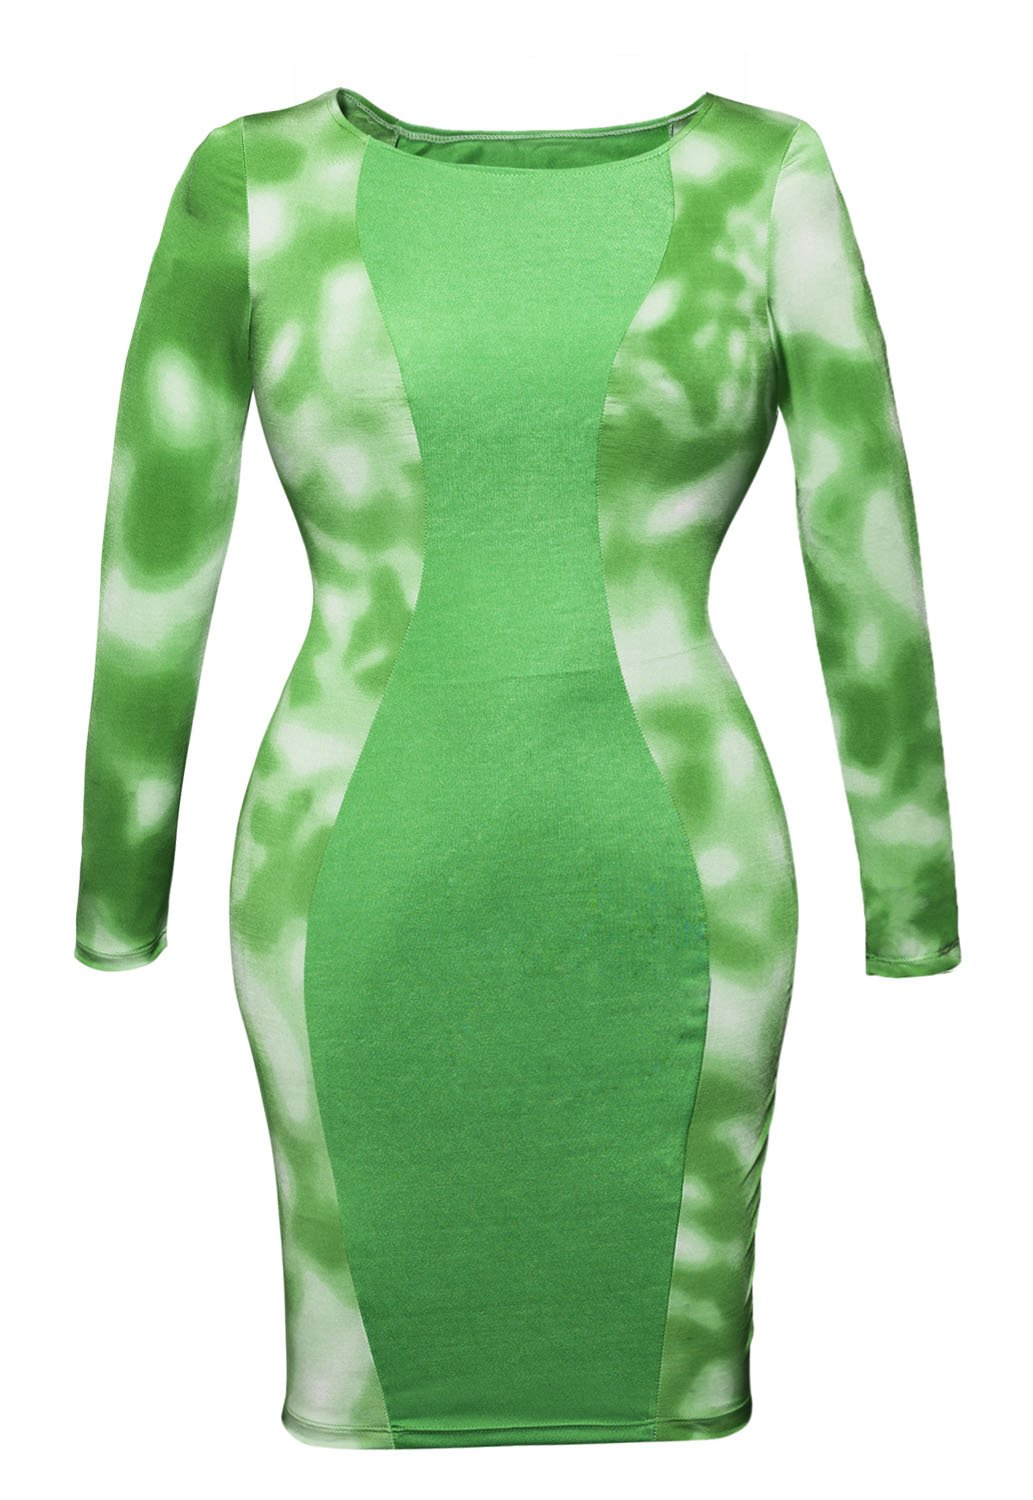 Bright Green Tie Dyed lati corpo con mini vestito Club Wear party taglia M 10–12